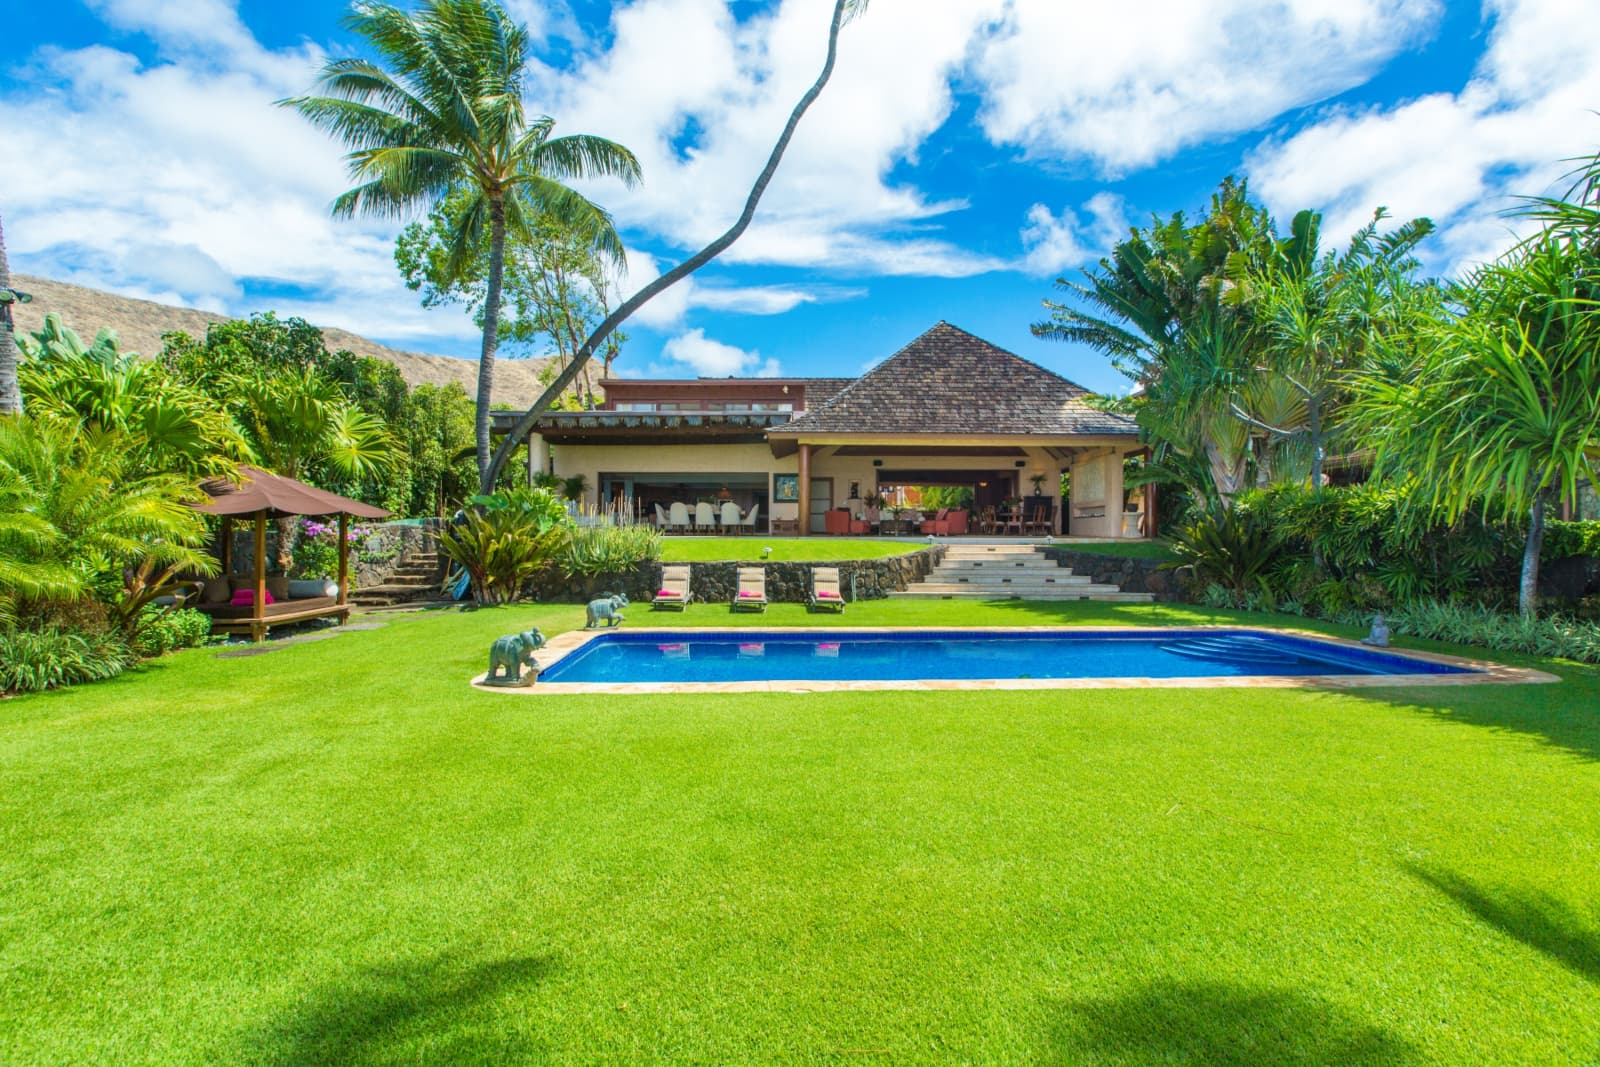 Luxury Single Family Home With Wide Open Lawn On Oahu